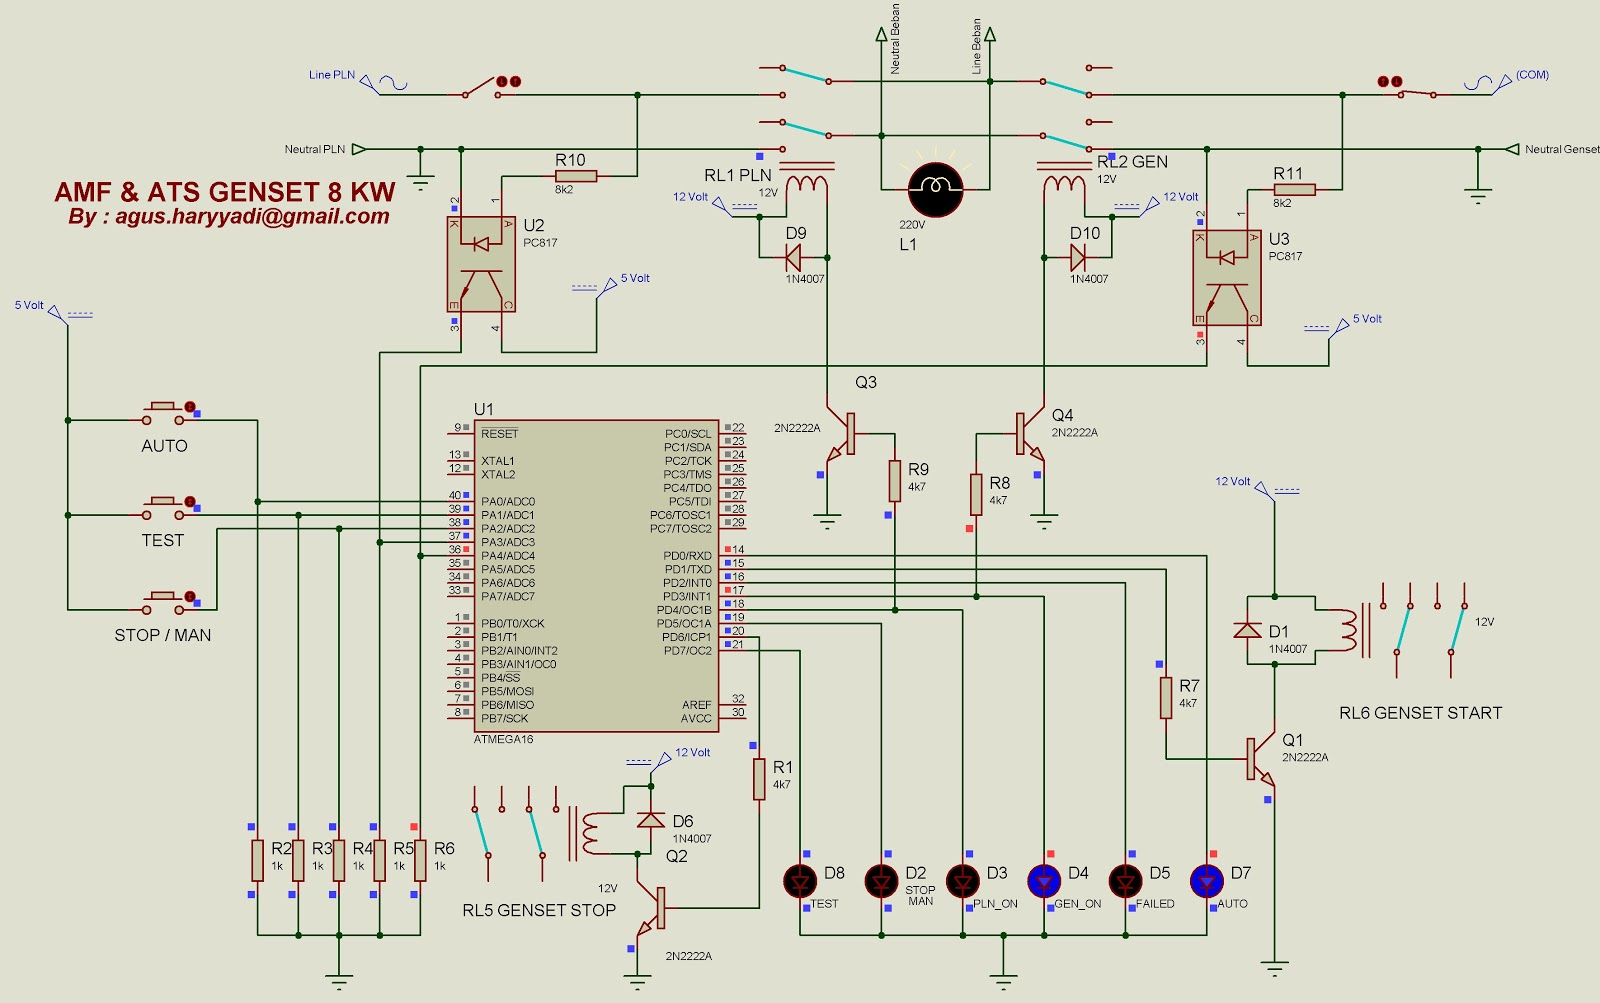 Gambar wiring diagram ats wiring diagram for light switch cara membuat amf dan ats yang murah dan terjangkau kumpulan teknik rh kumpulan elektro blogspot com bypass ats wiring diagram generac generator wiring asfbconference2016